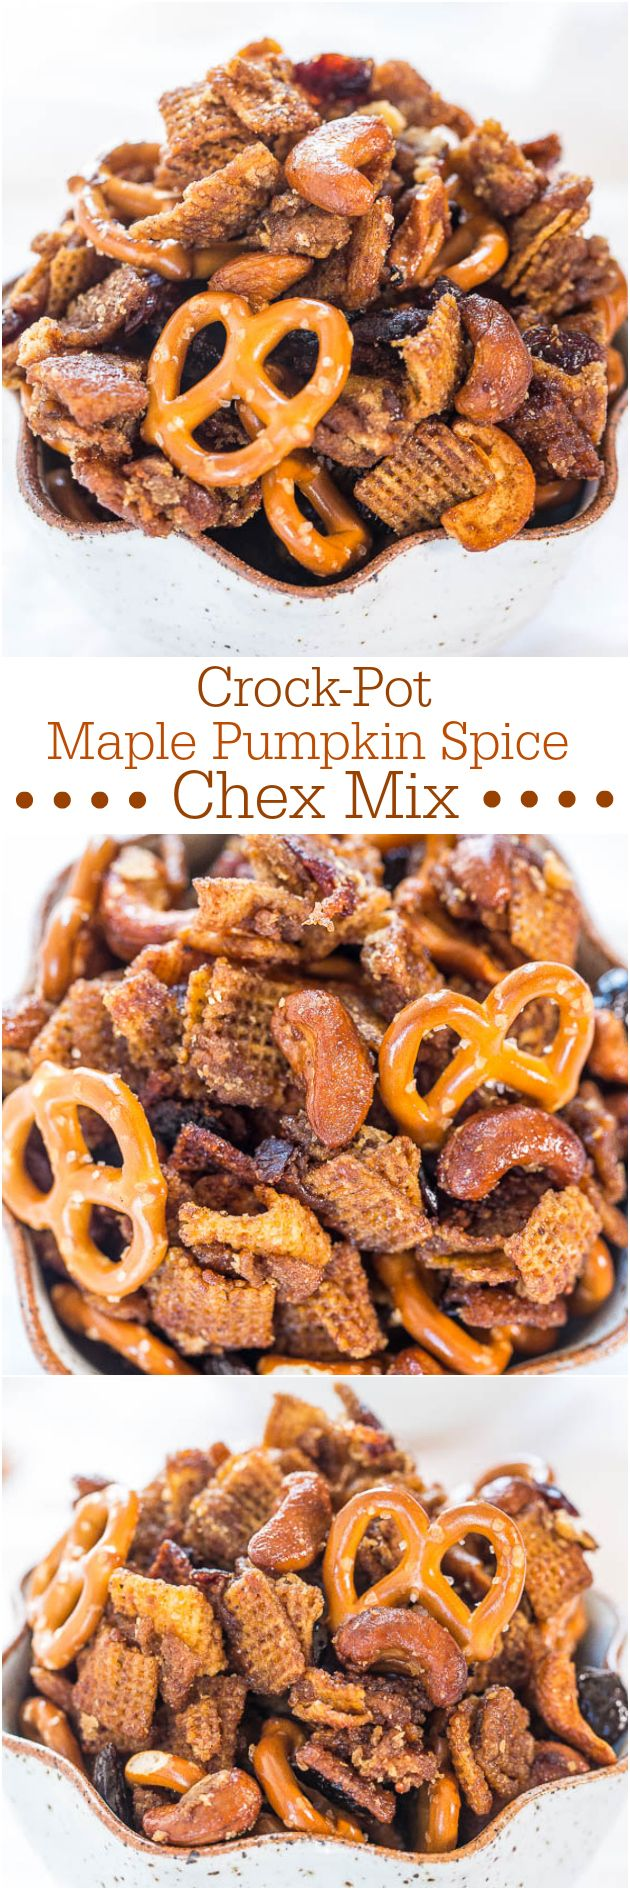 Crock-Pot Maple Pumpkin Spice Chex Mix - Loaded with fall flavors and made in a…